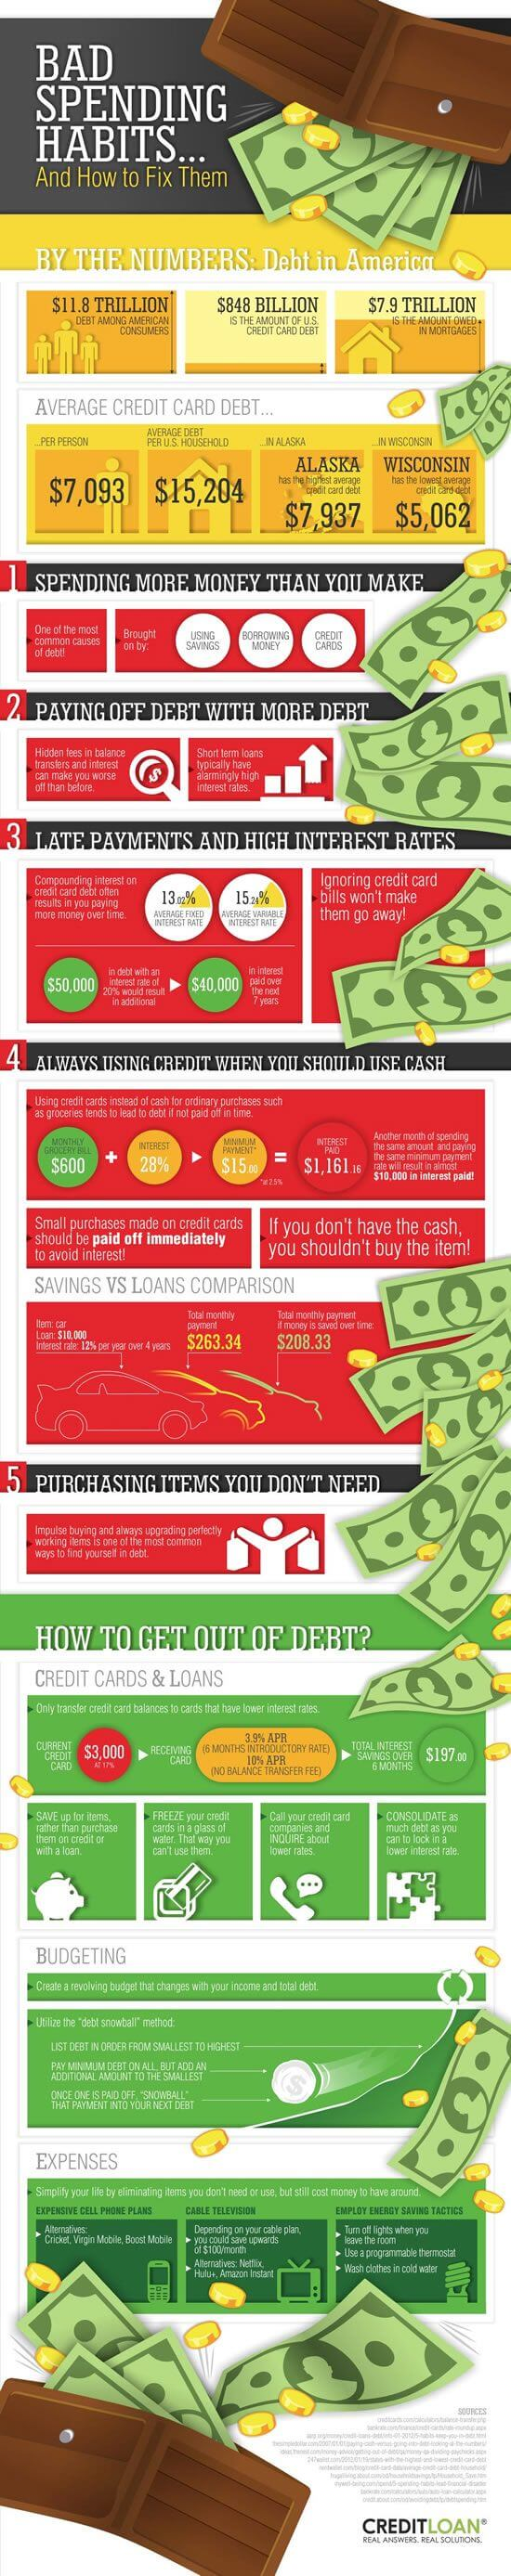 Bad Spending Habits and How to Fix Them Infographic